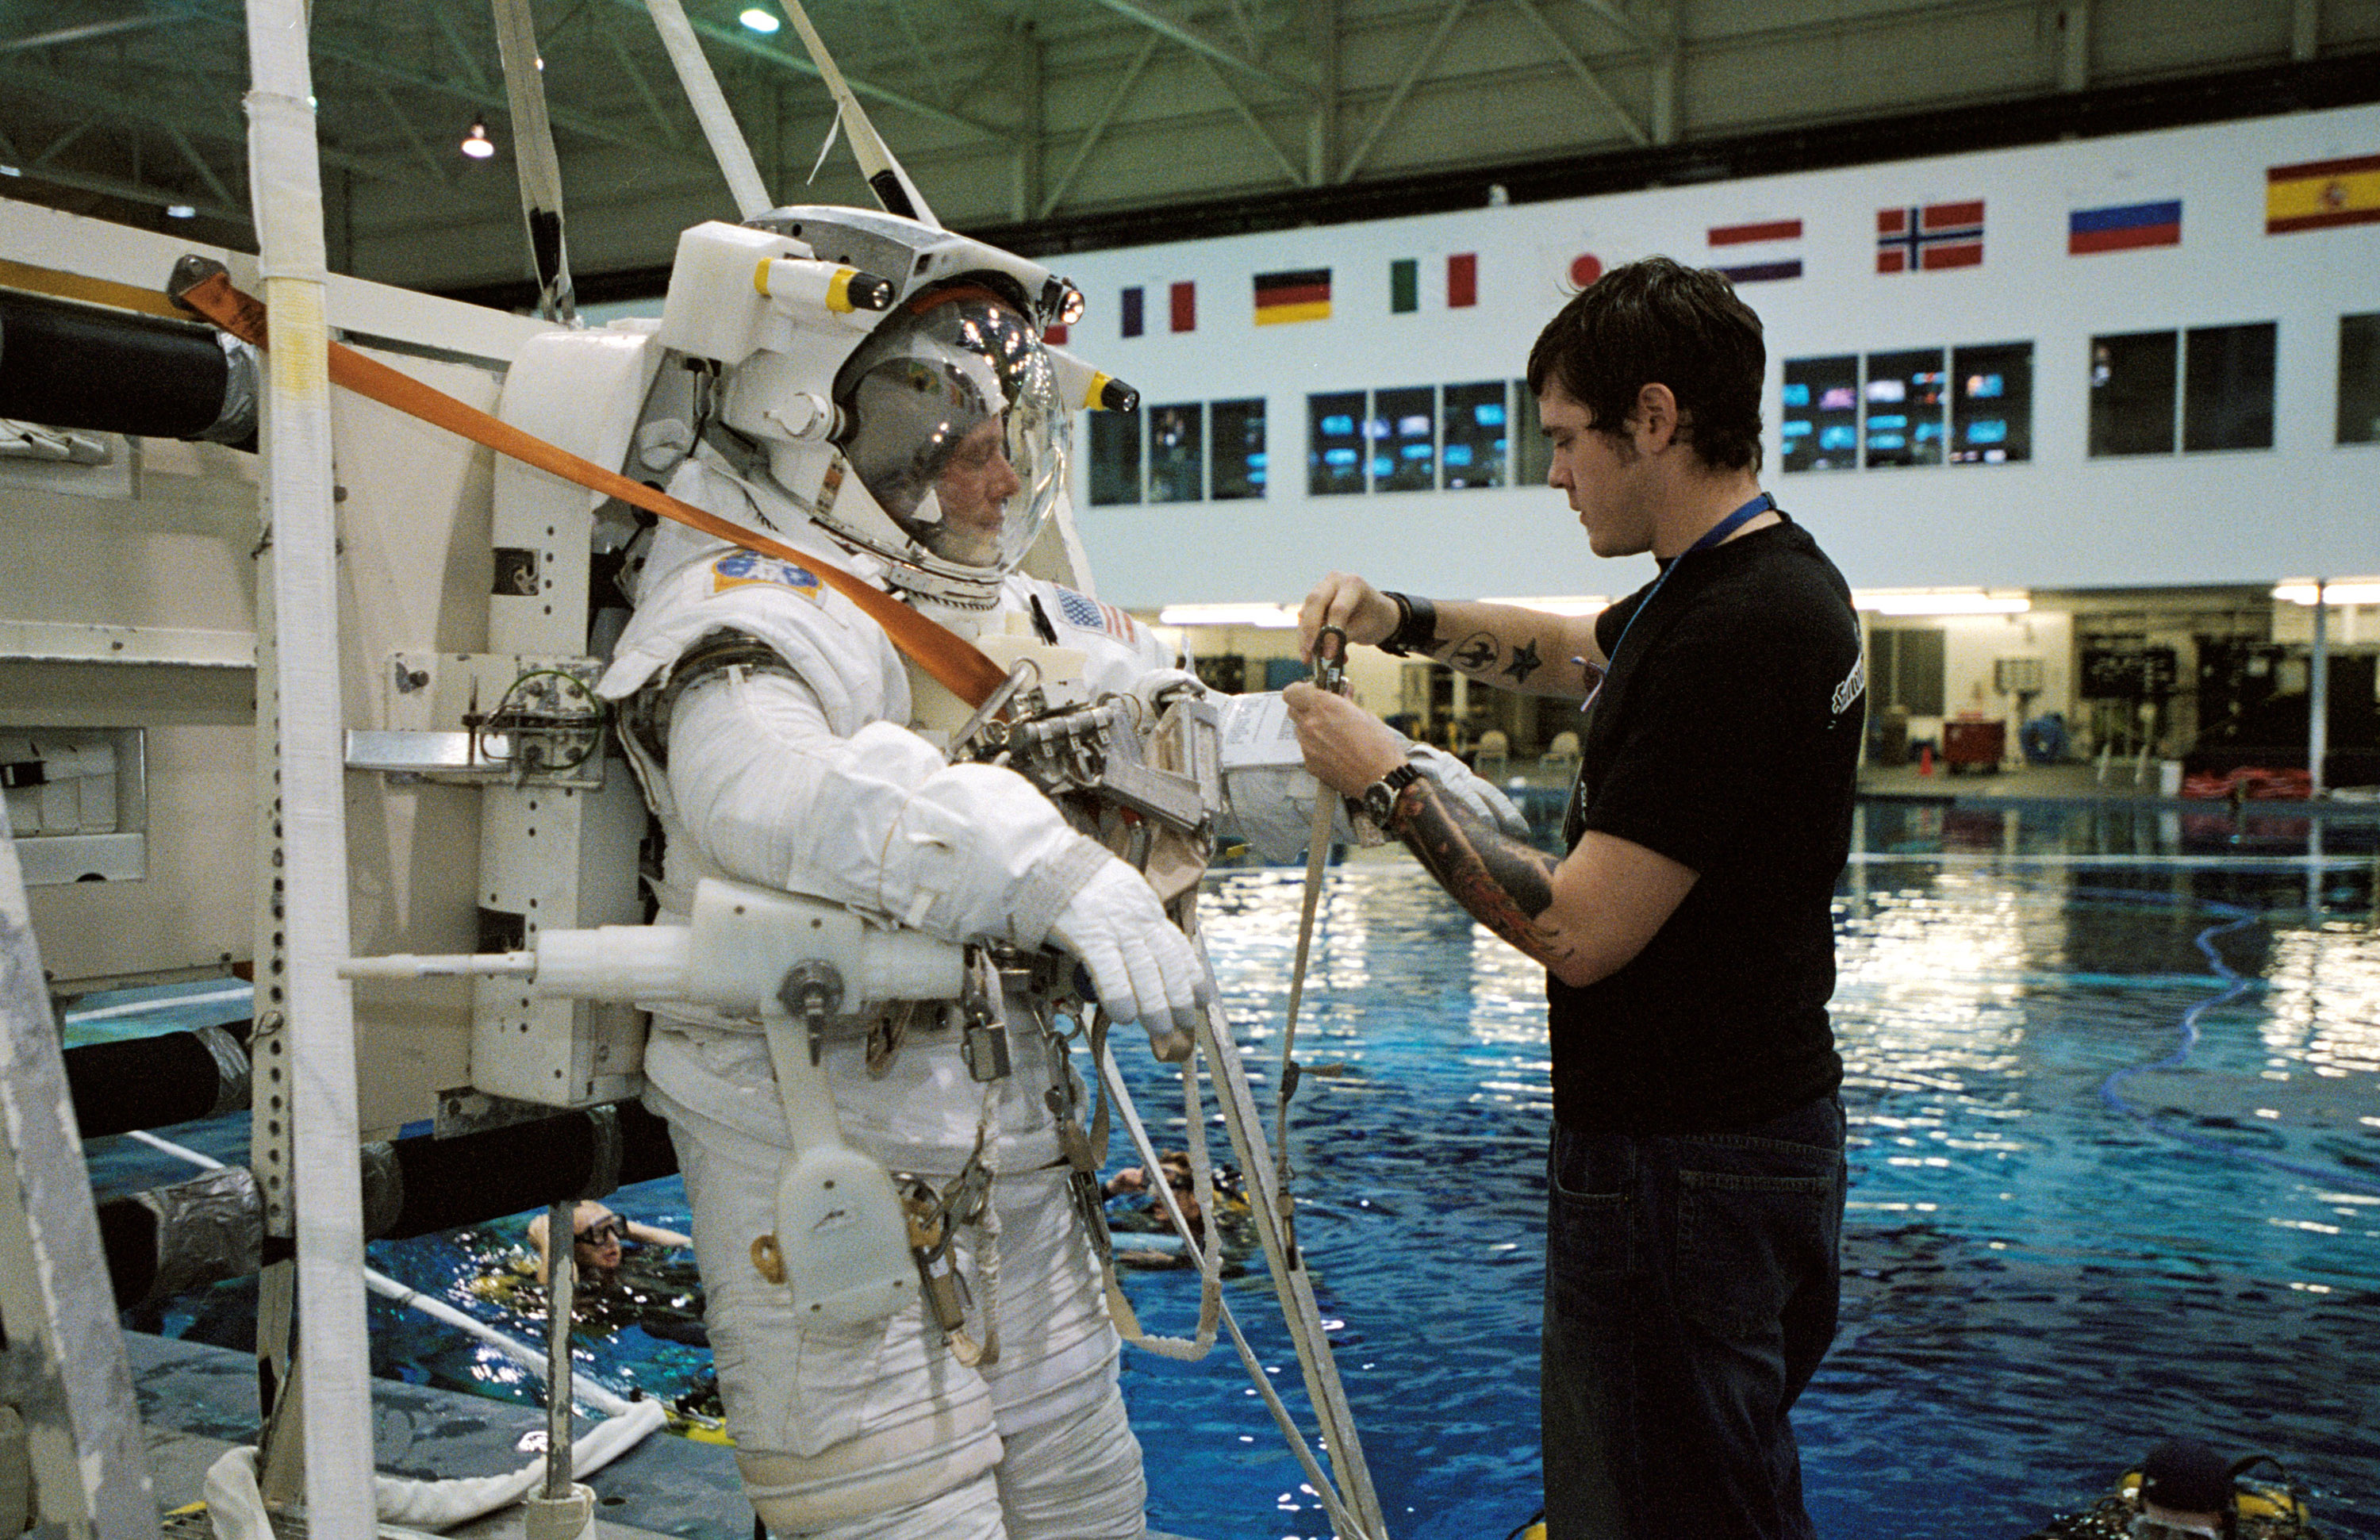 Astronaut Training Underwater (page 2) - Pics about space